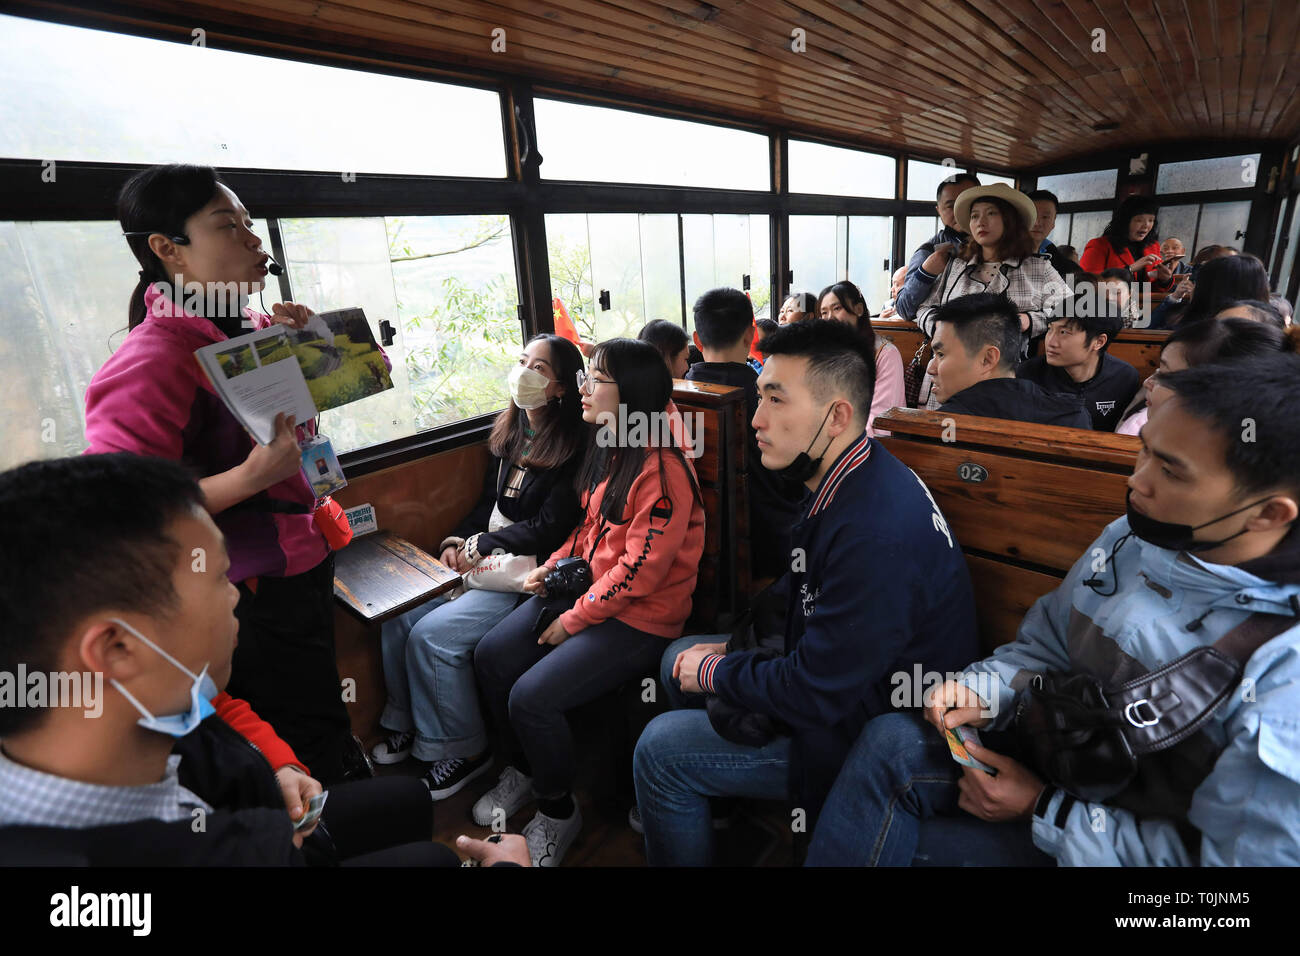 Qianwei, China's Sichuan Province. 20th Mar, 2019. Tourists listen as a guide explains in a Jiayang steam train running on a narrow gauge railway in Qianwei County, southwest China's Sichuan Province, March 20, 2019. The old-fashioned steam train, running on a narrow gauge railway in Qianwei County, serves mainly in sightseeing, but as increasing number of tourists visit the county in recent years, the train itself has become an attraction providing a journey of reminiscence. Credit: Jiang Hongjing/Xinhua/Alamy Live News - Stock Image